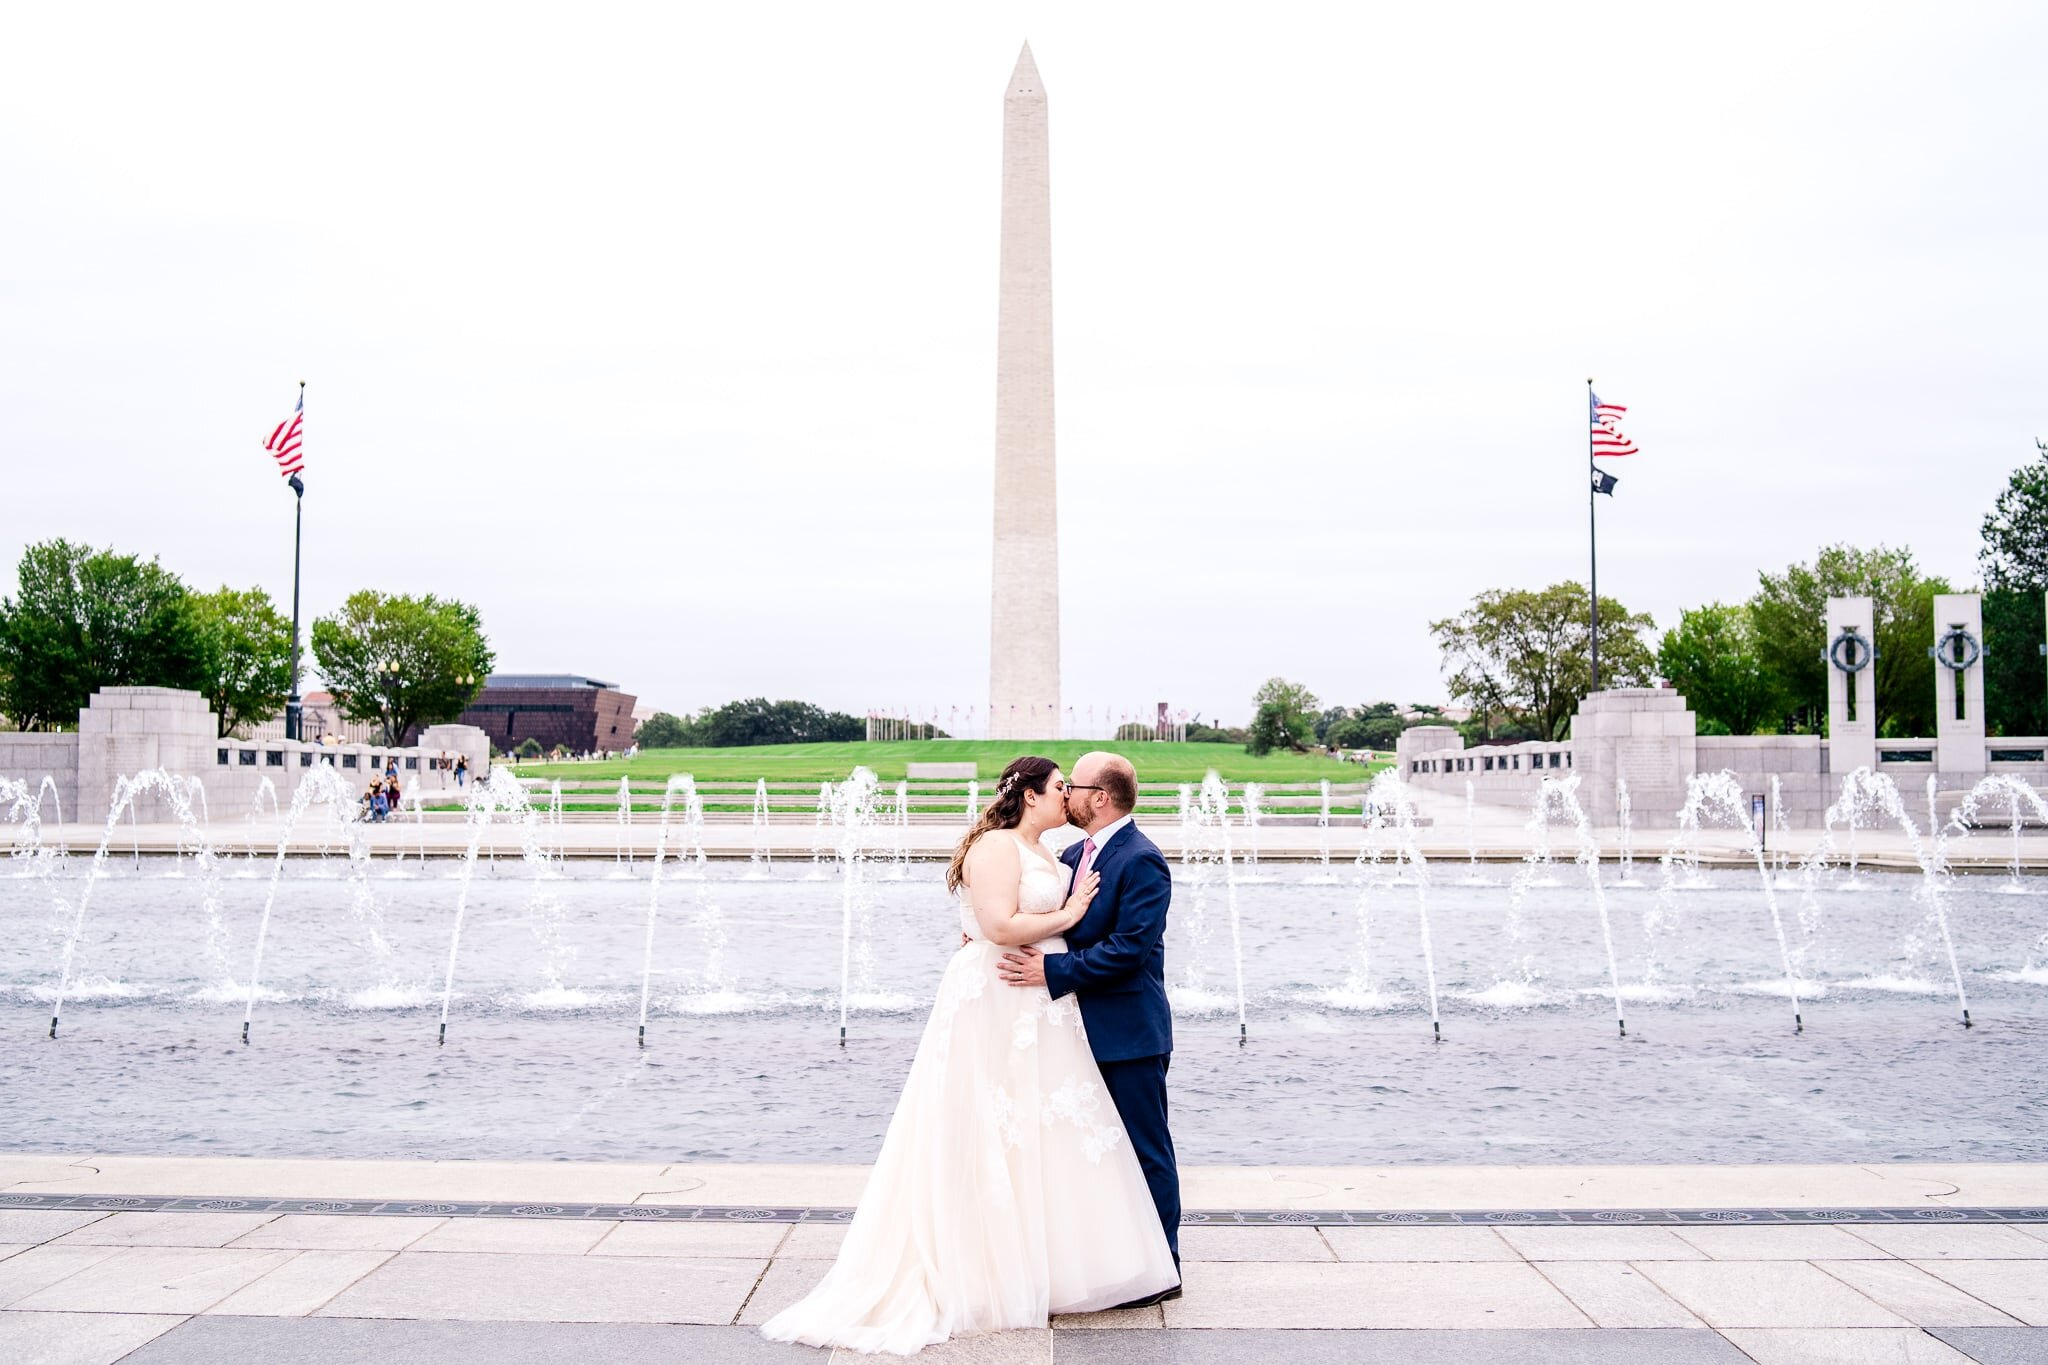 A bride and groom share a romantic kiss on their fall wedding day at the WWII Memorial in front of the Washington Monument in Washington, DC